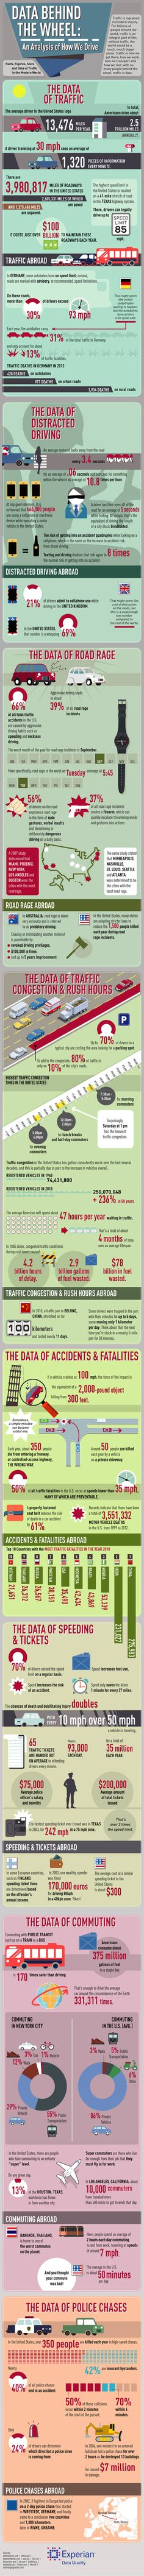 Data Behind the Wheel: An Analysis of How We Drive #infographic #Driving #Transportation